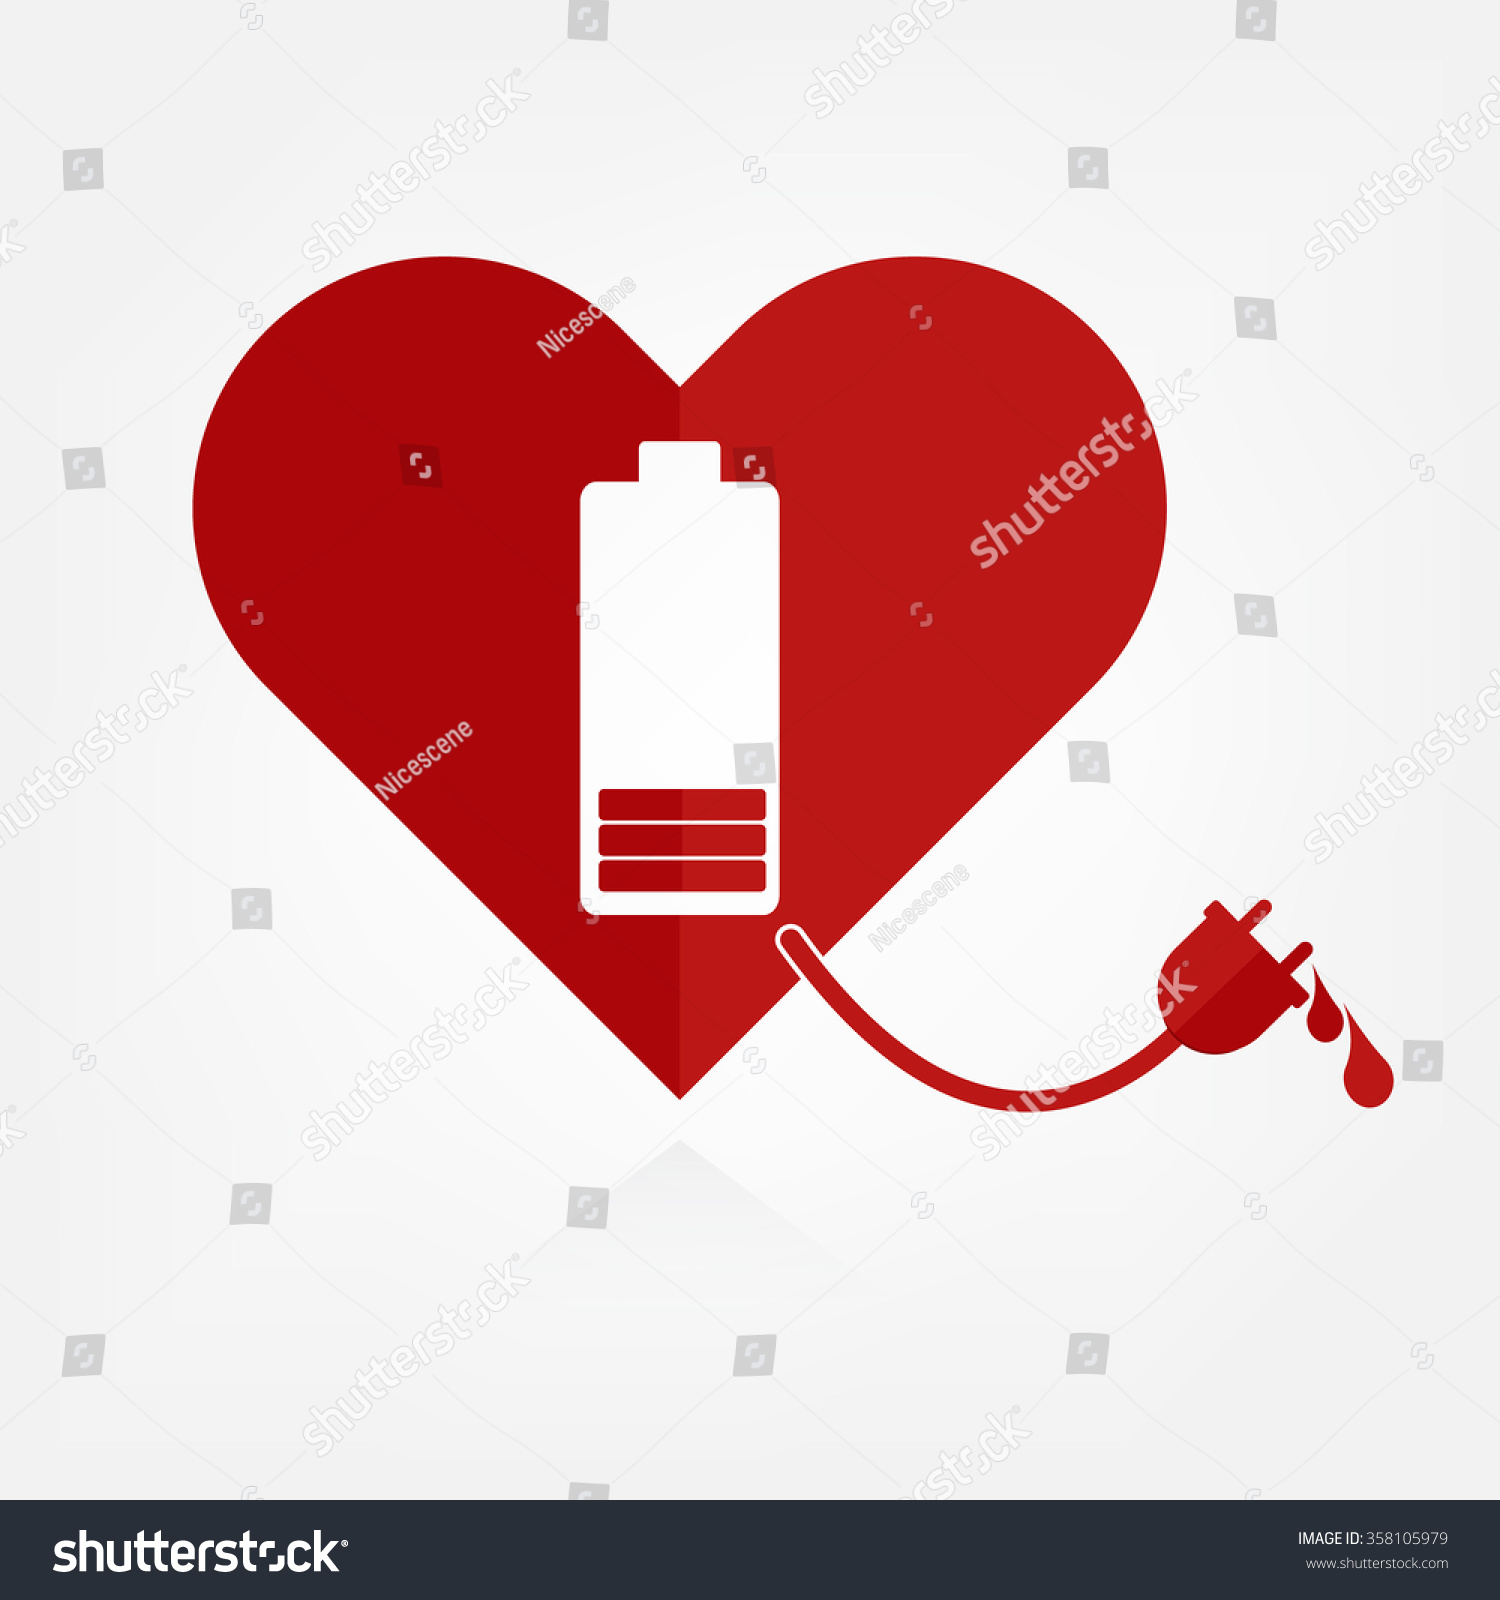 Flat Design Red Hearts With Low Battery Charger Sign And Power Line With  Bloods. Valentine